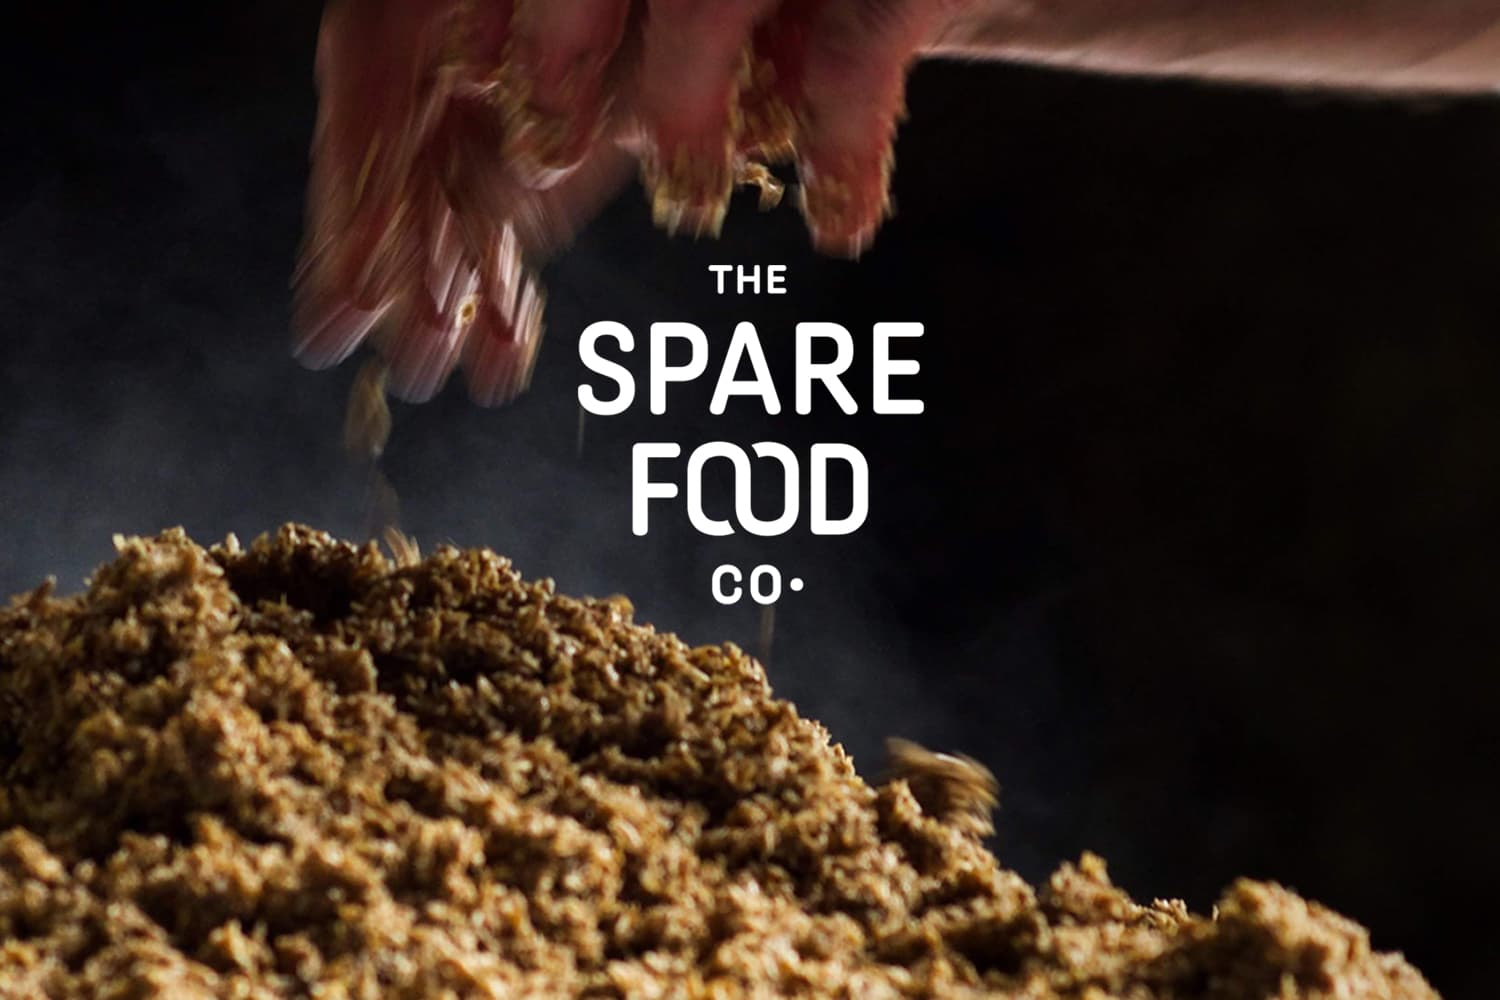 The Spare Food Co. Brand Identity